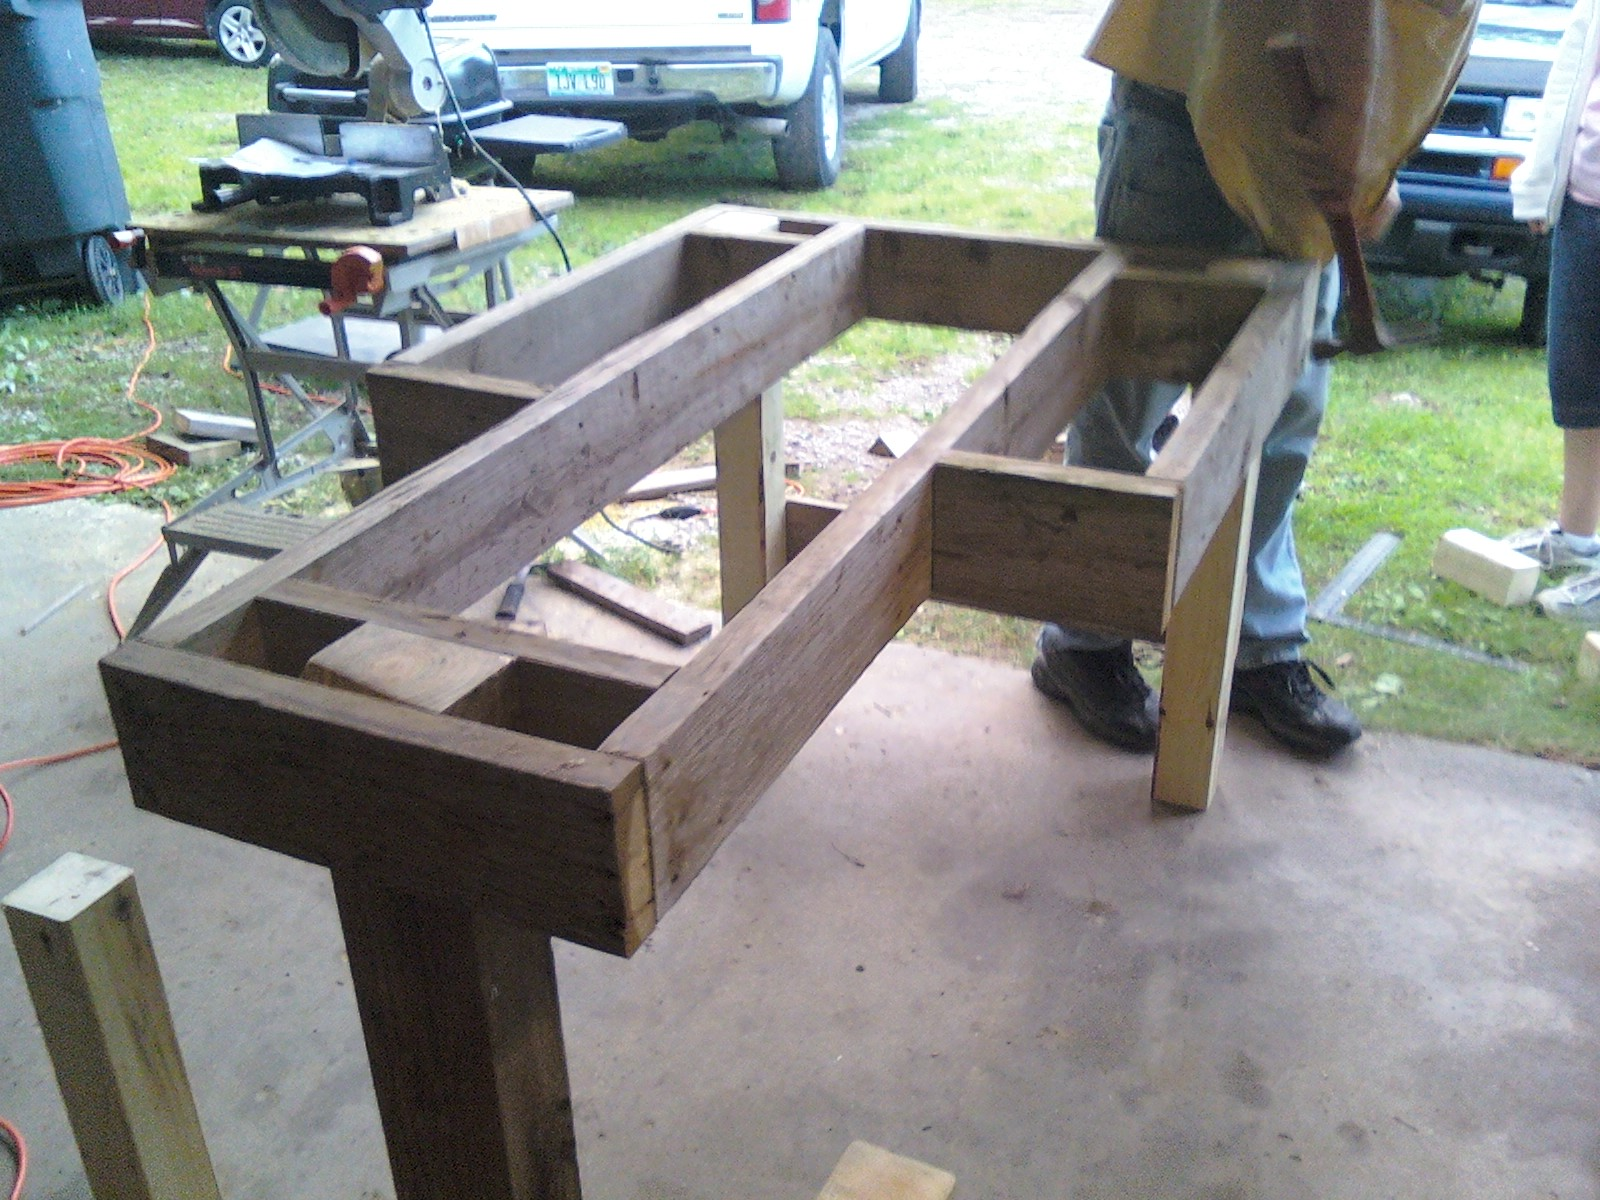 Bench Rest Plans | How to Build A Shooting Bench | Shooting Bench Plans Pdf